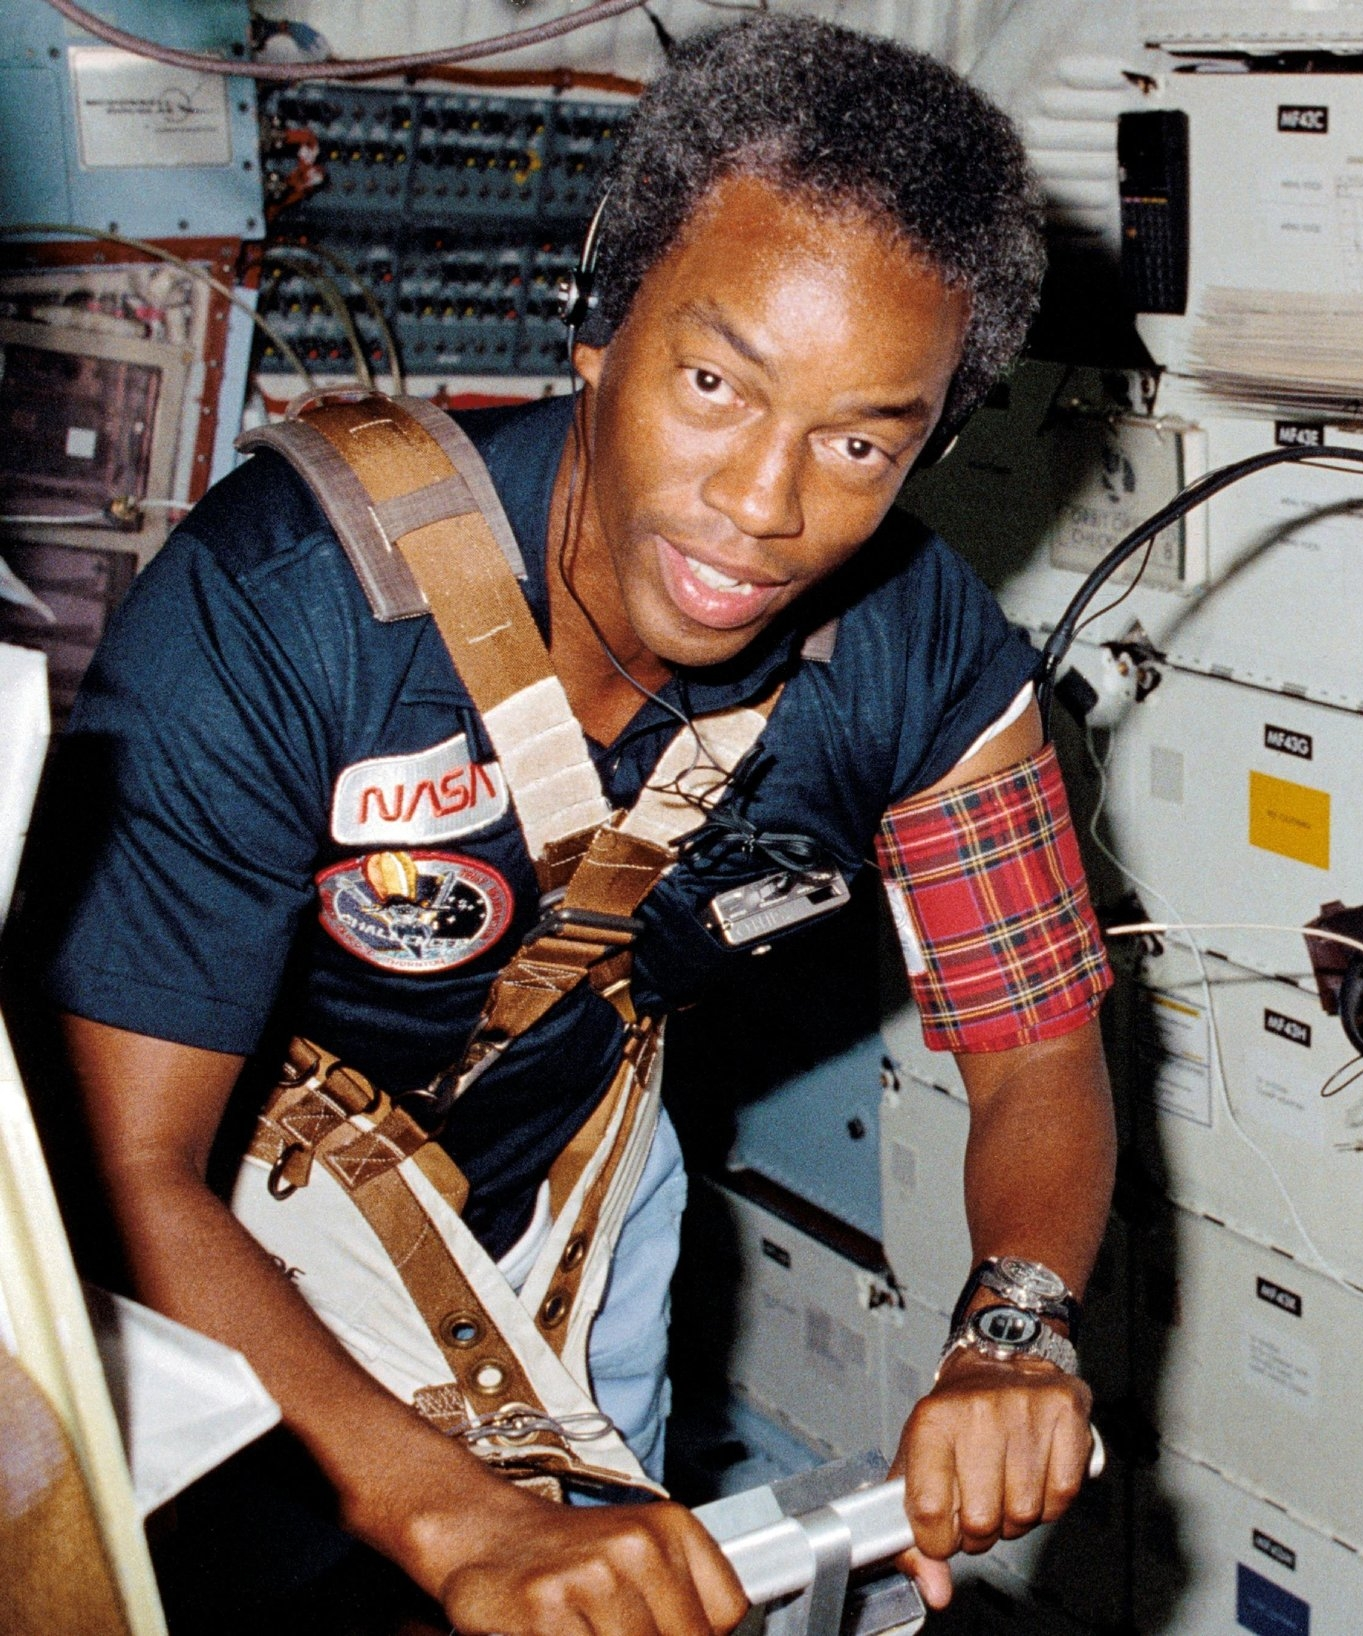 Col. GUY BLUFORD, Ph.D. - You know it's only right that the first African American in space, floating all care-free among the stars, would take off from the birthplace of freedom.  Philly, Philly — Philly is where this man's from!